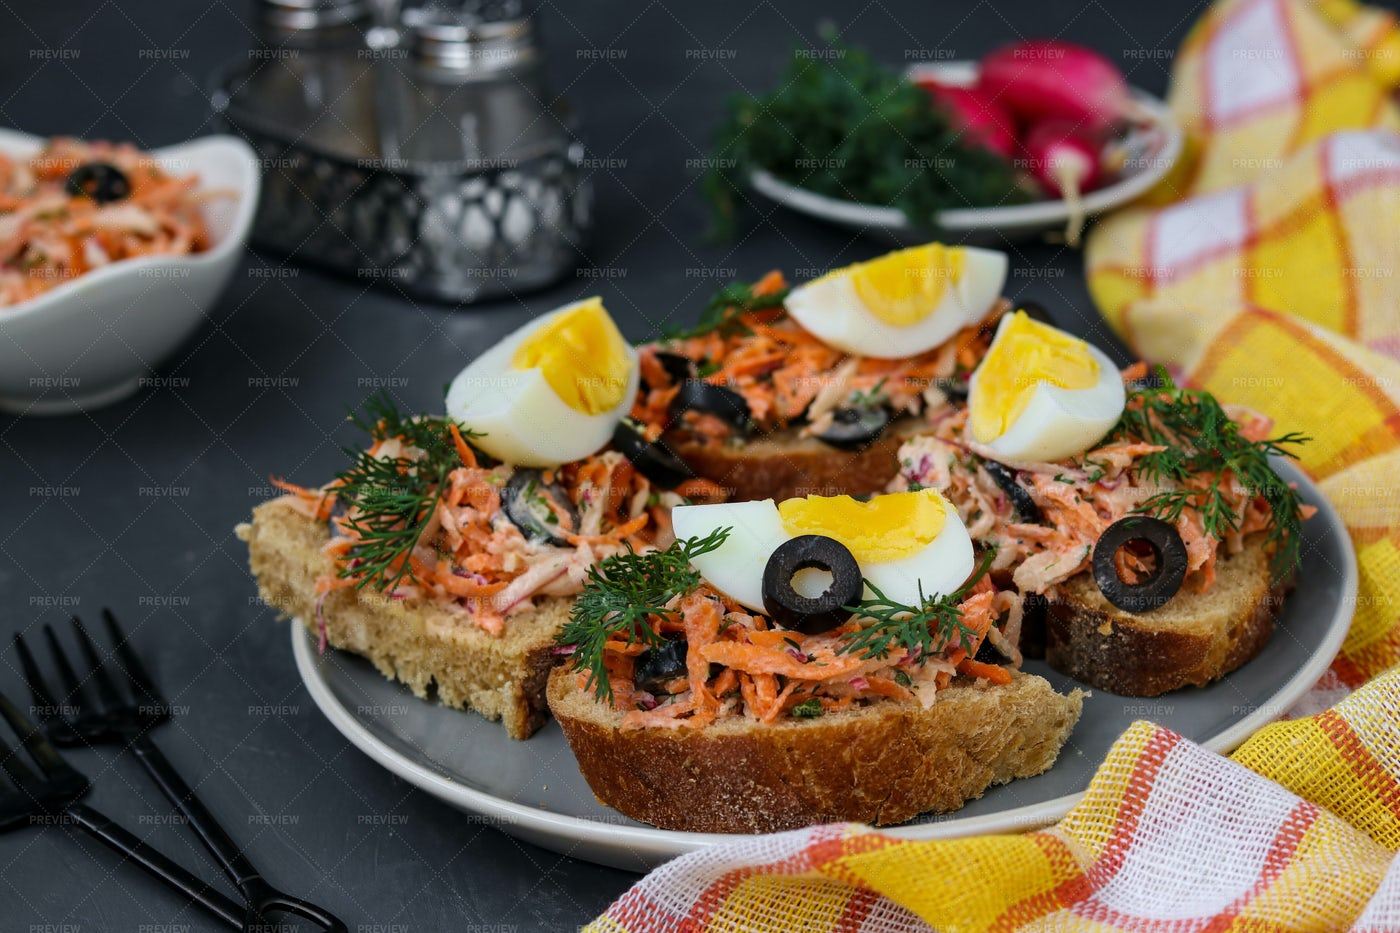 Homemade Sandwiches With Carrots: Stock Photos